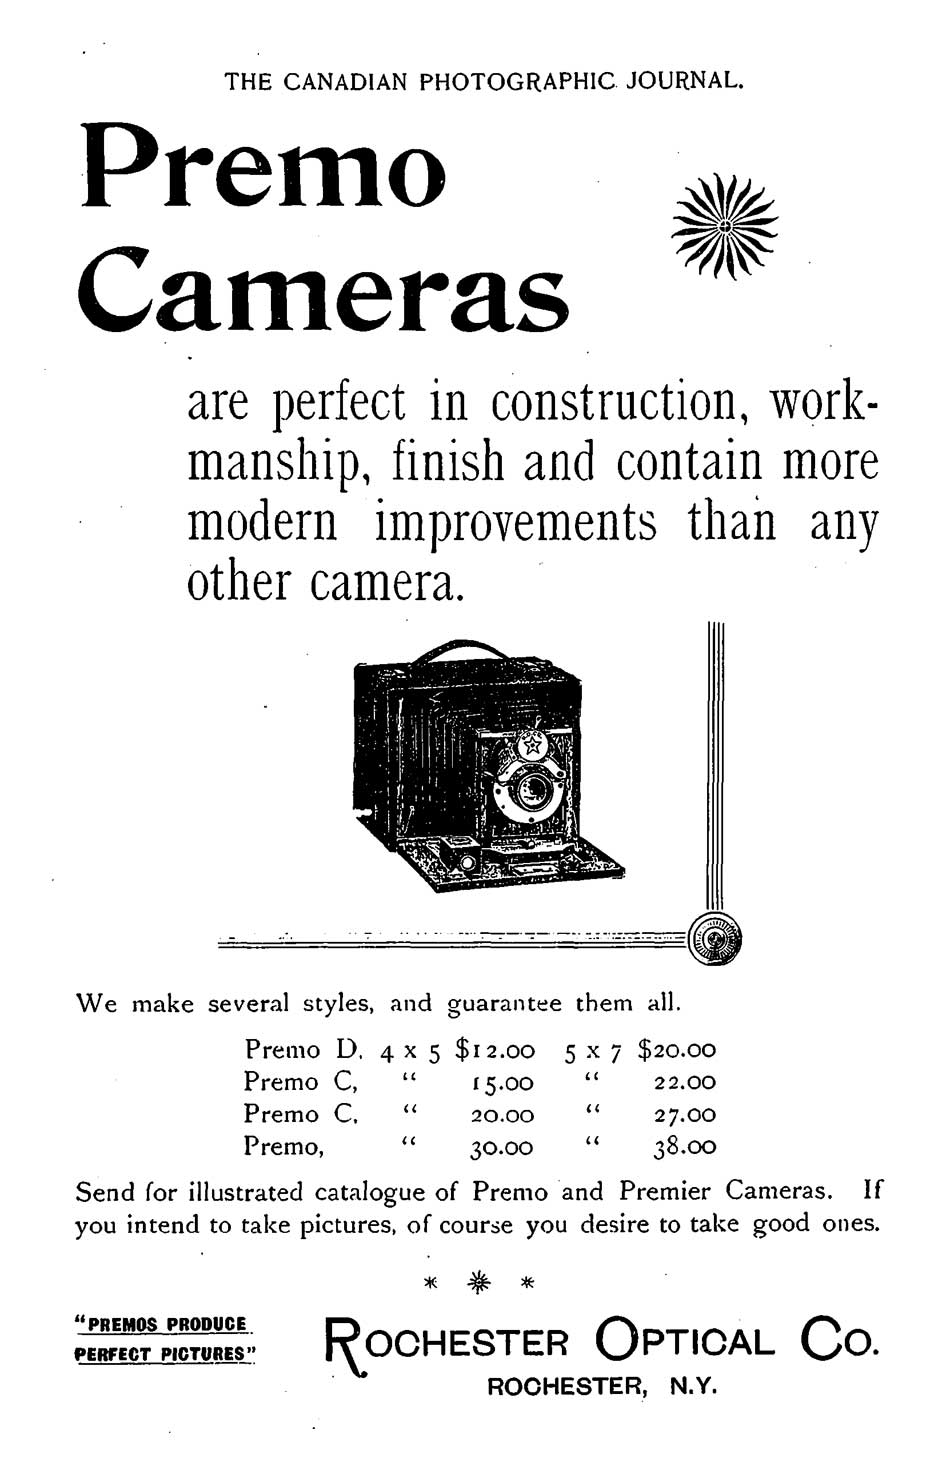 canadianphotographicjournalmay95ad